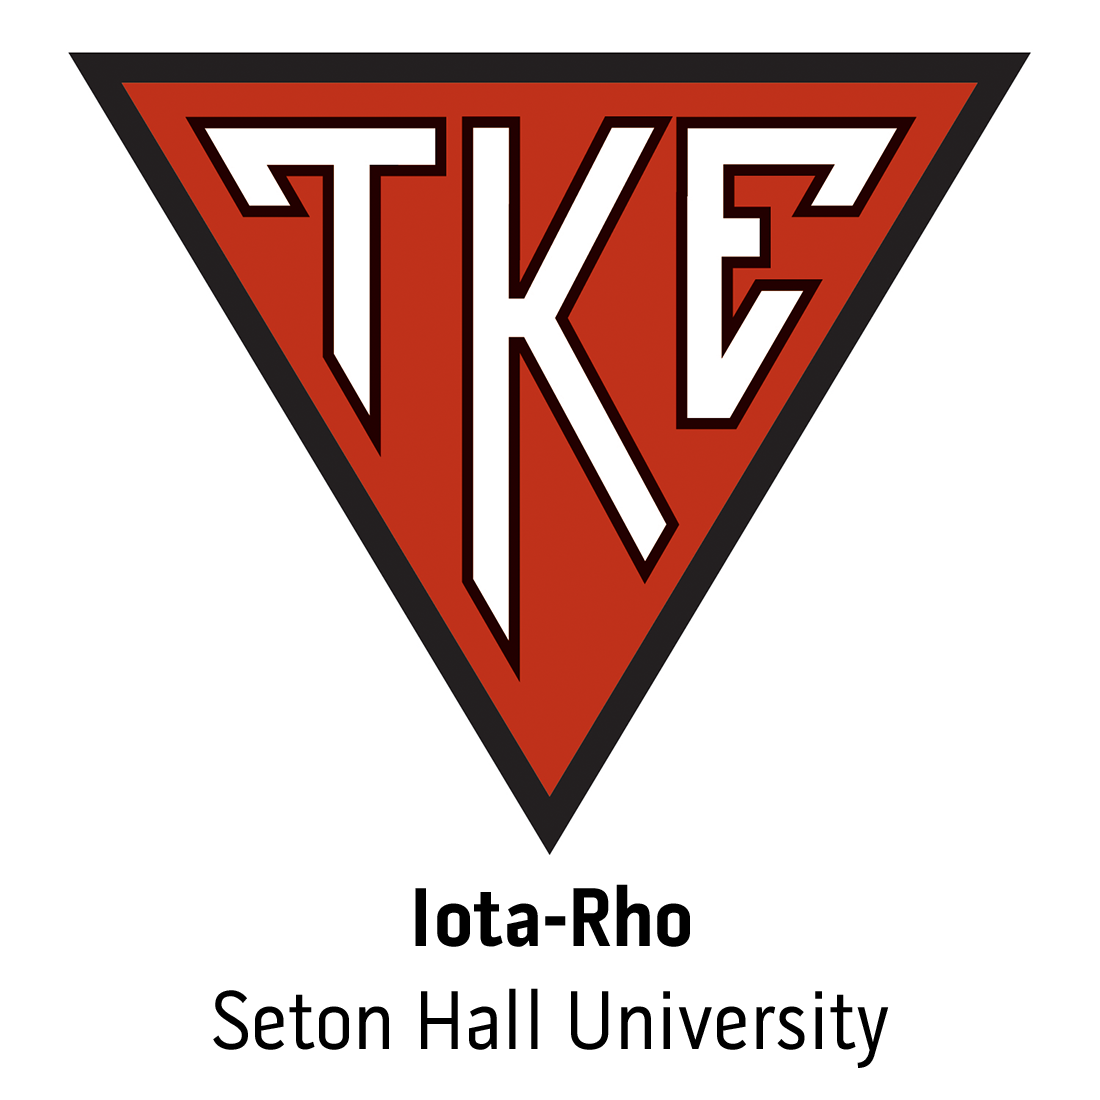 Iota-Rho Chapter at Seton Hall University